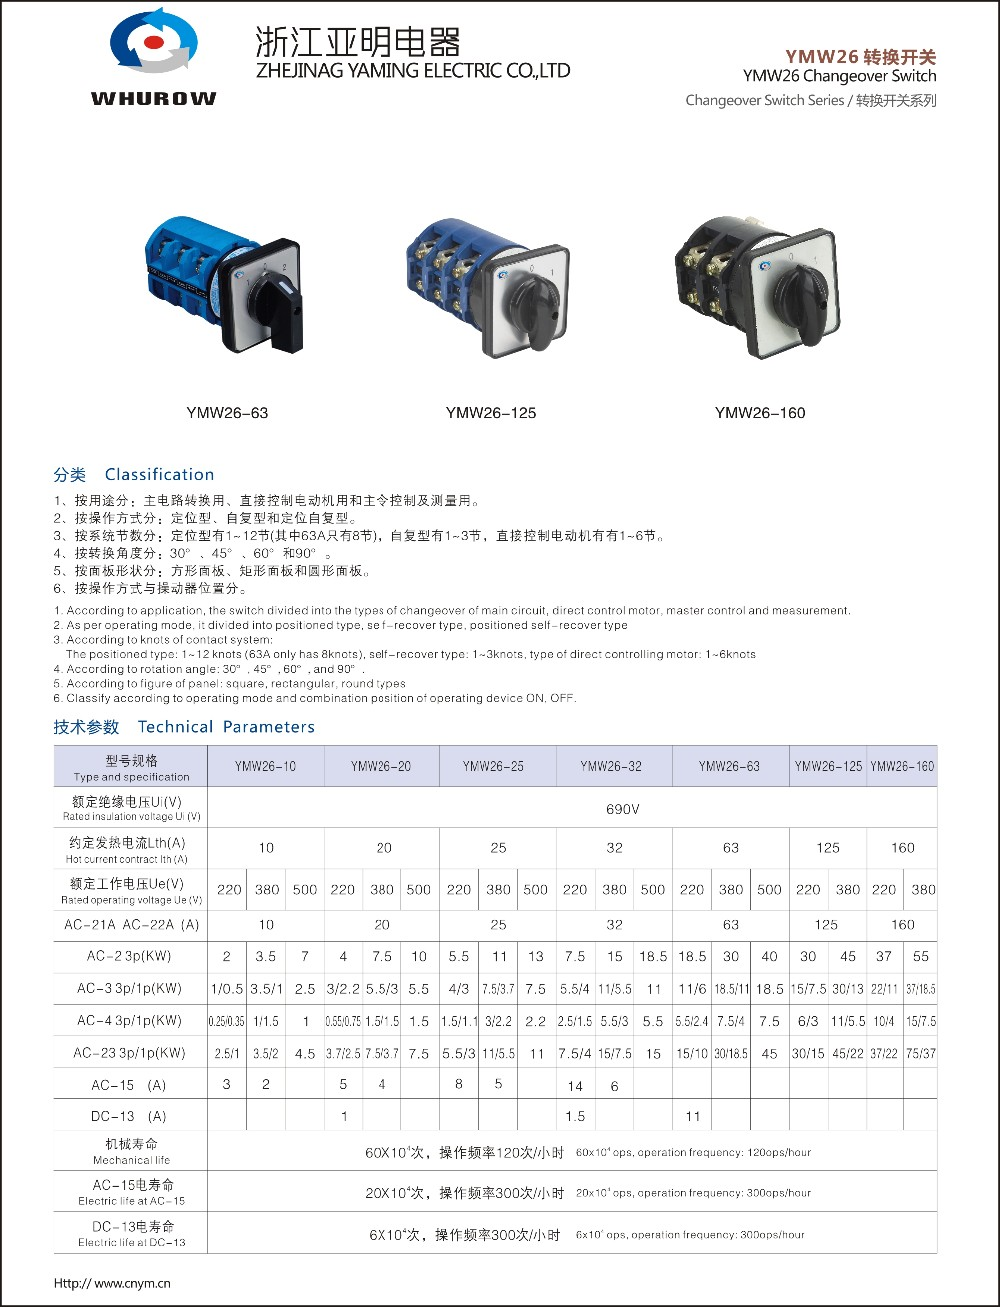 2 Way Rotary Switch Wiring Diagrams Data Base Changeover Cam 4 Position Diagram Electrical Drawing Rh G News Co At Ymw26gs 32 3 With Padlock Ui 690v Ith 32a Poles Wholesaler